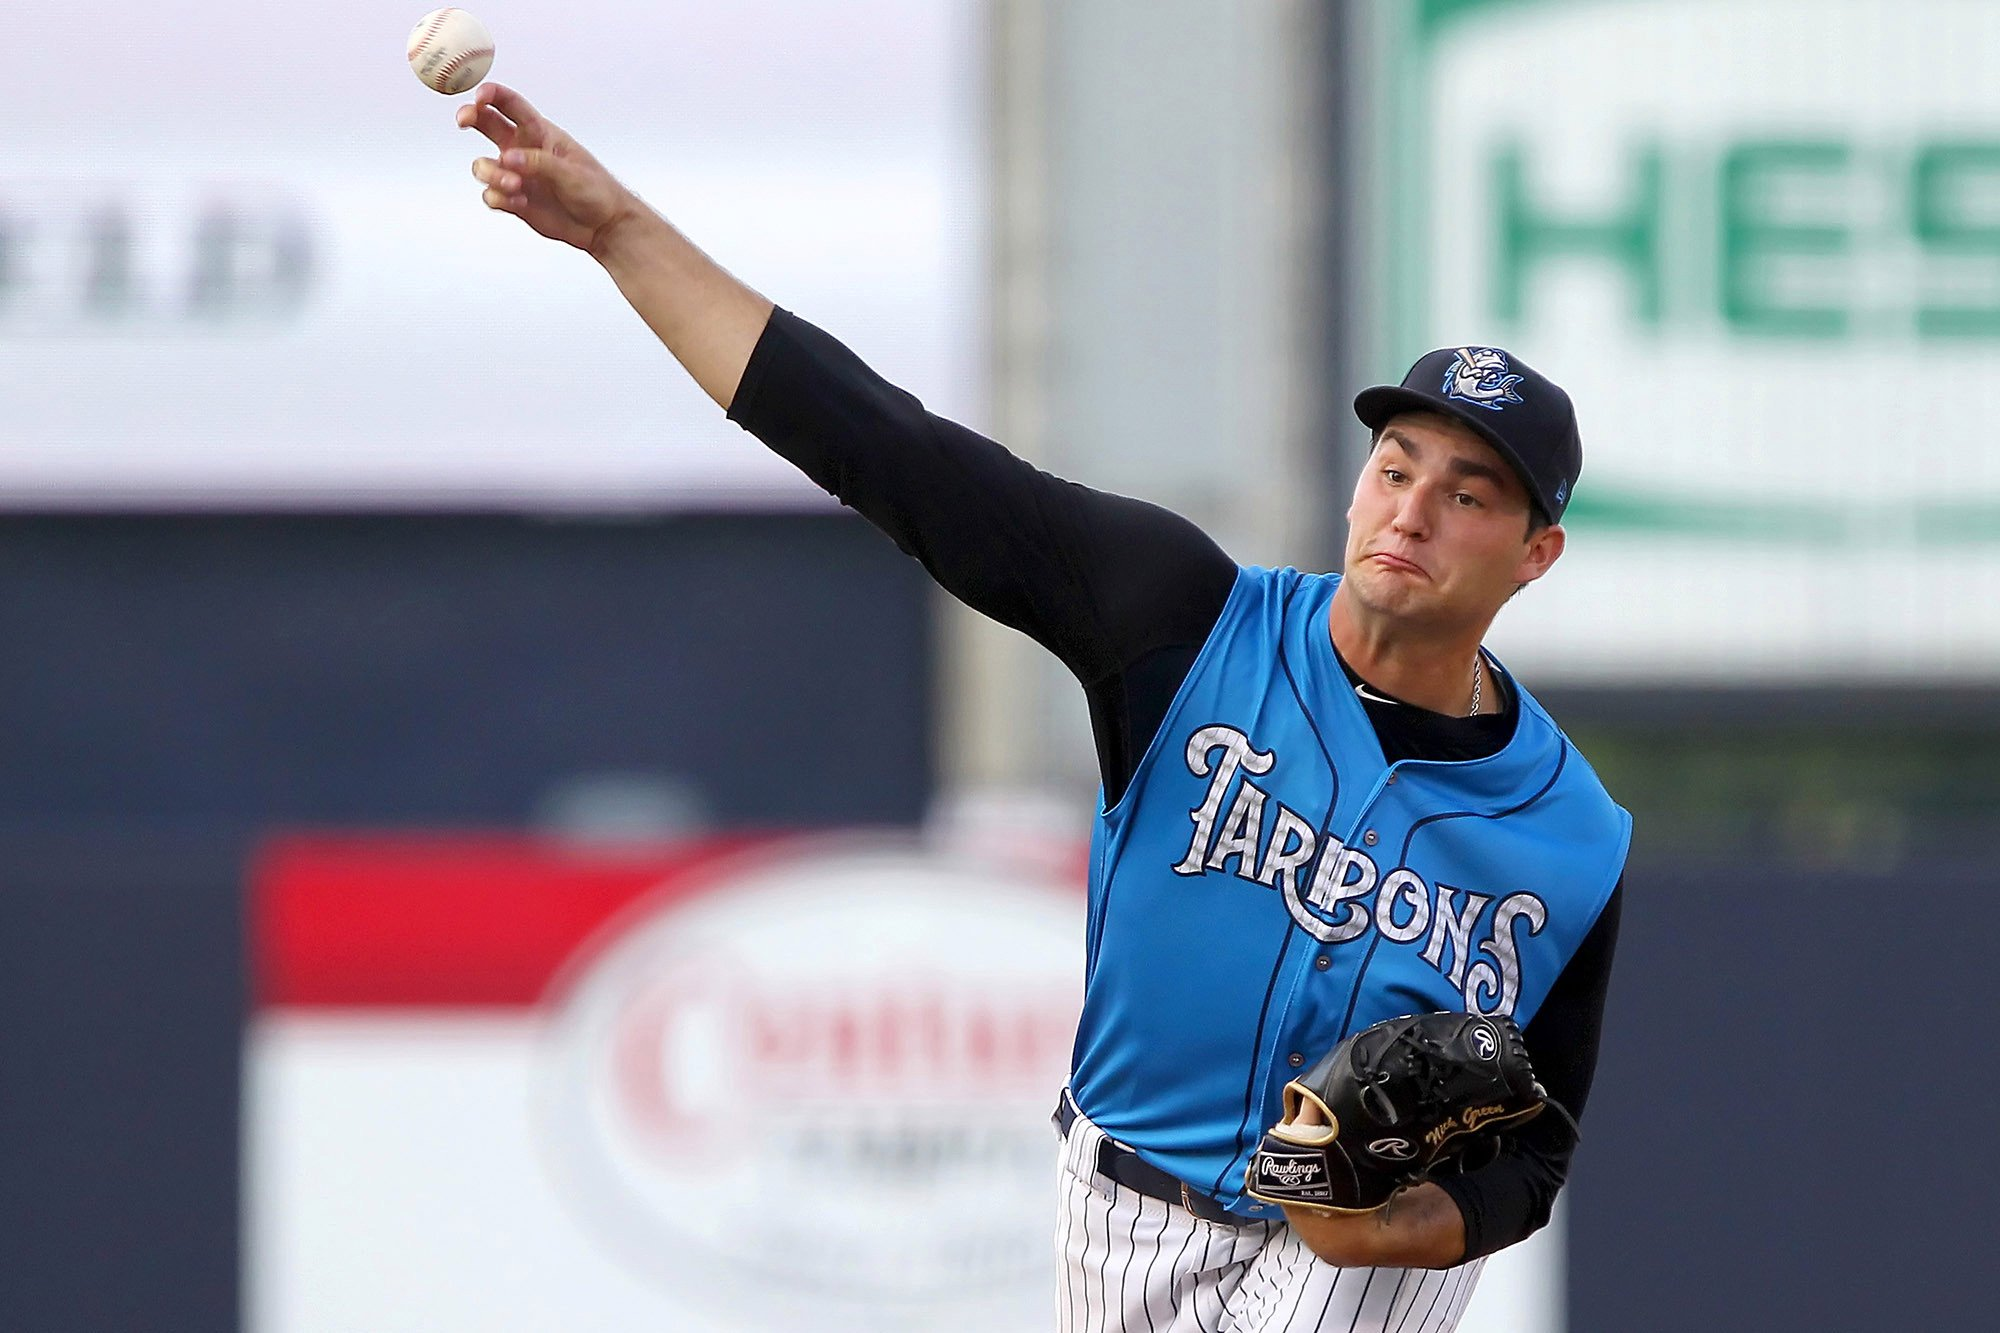 Yankees lose several prospects, Mets gain four in Rule 5 draft